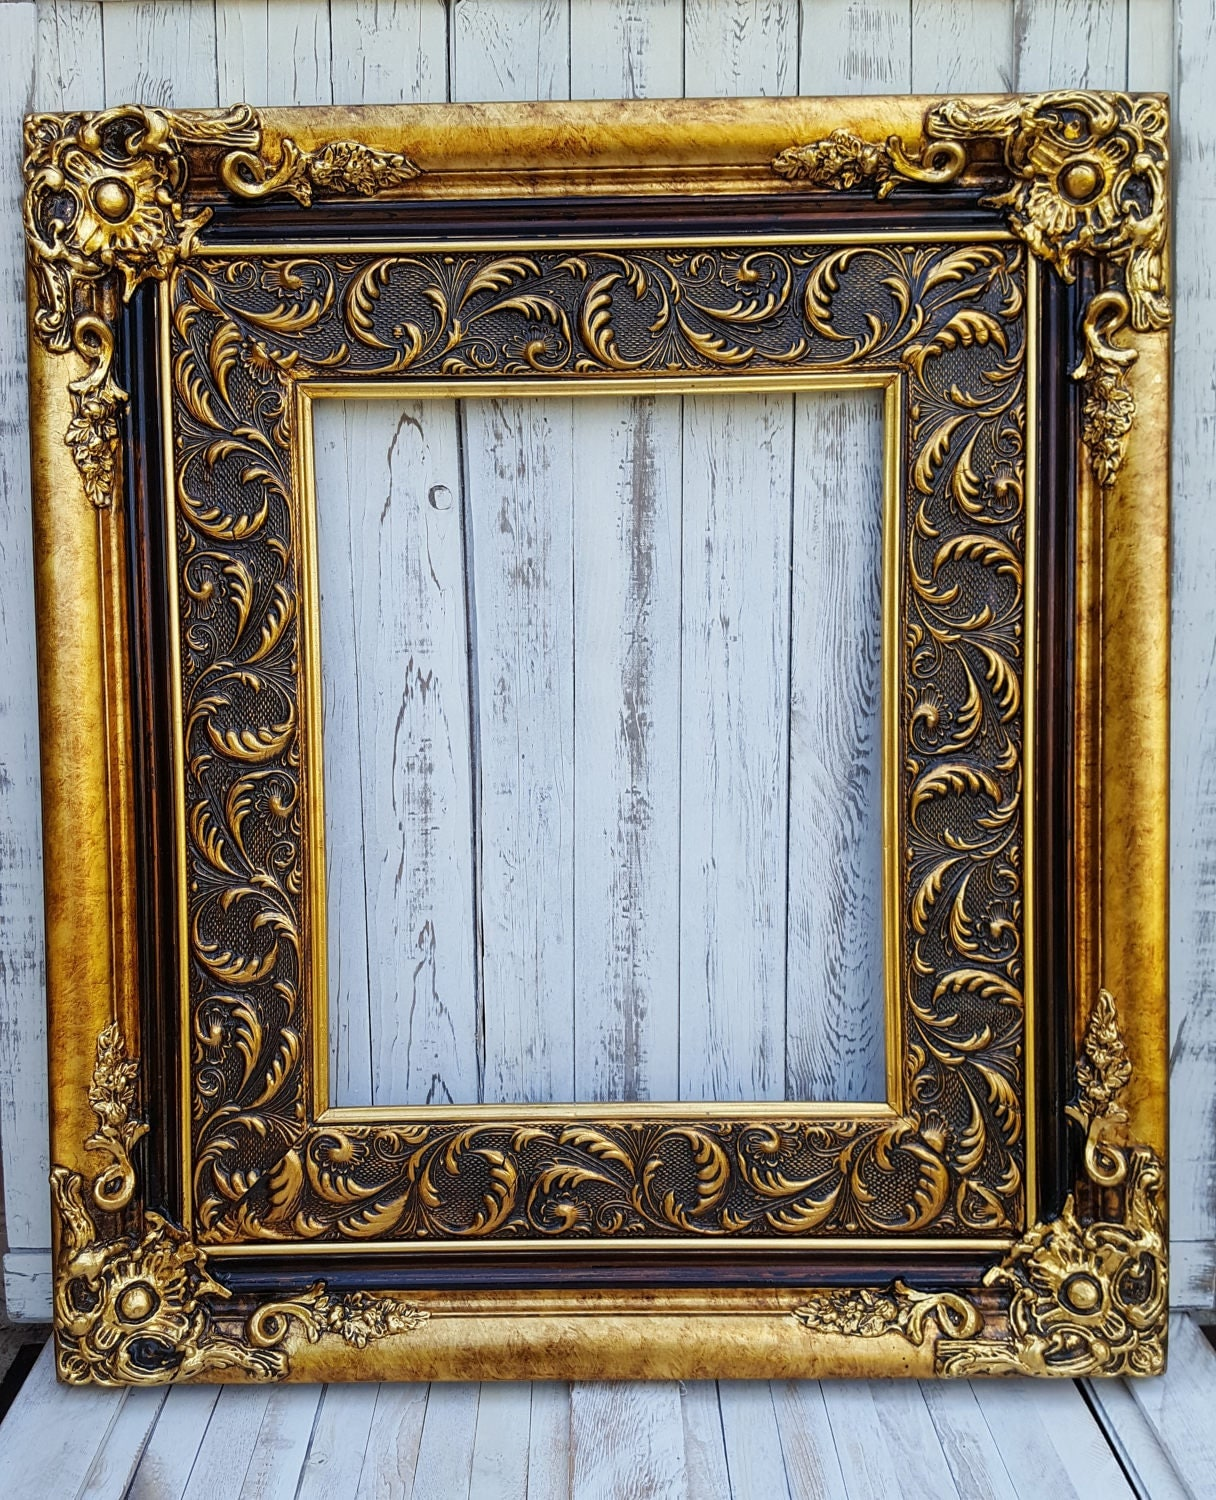 baroque style frame antique gold wedding frame colonial decor french decor frames shabby. Black Bedroom Furniture Sets. Home Design Ideas